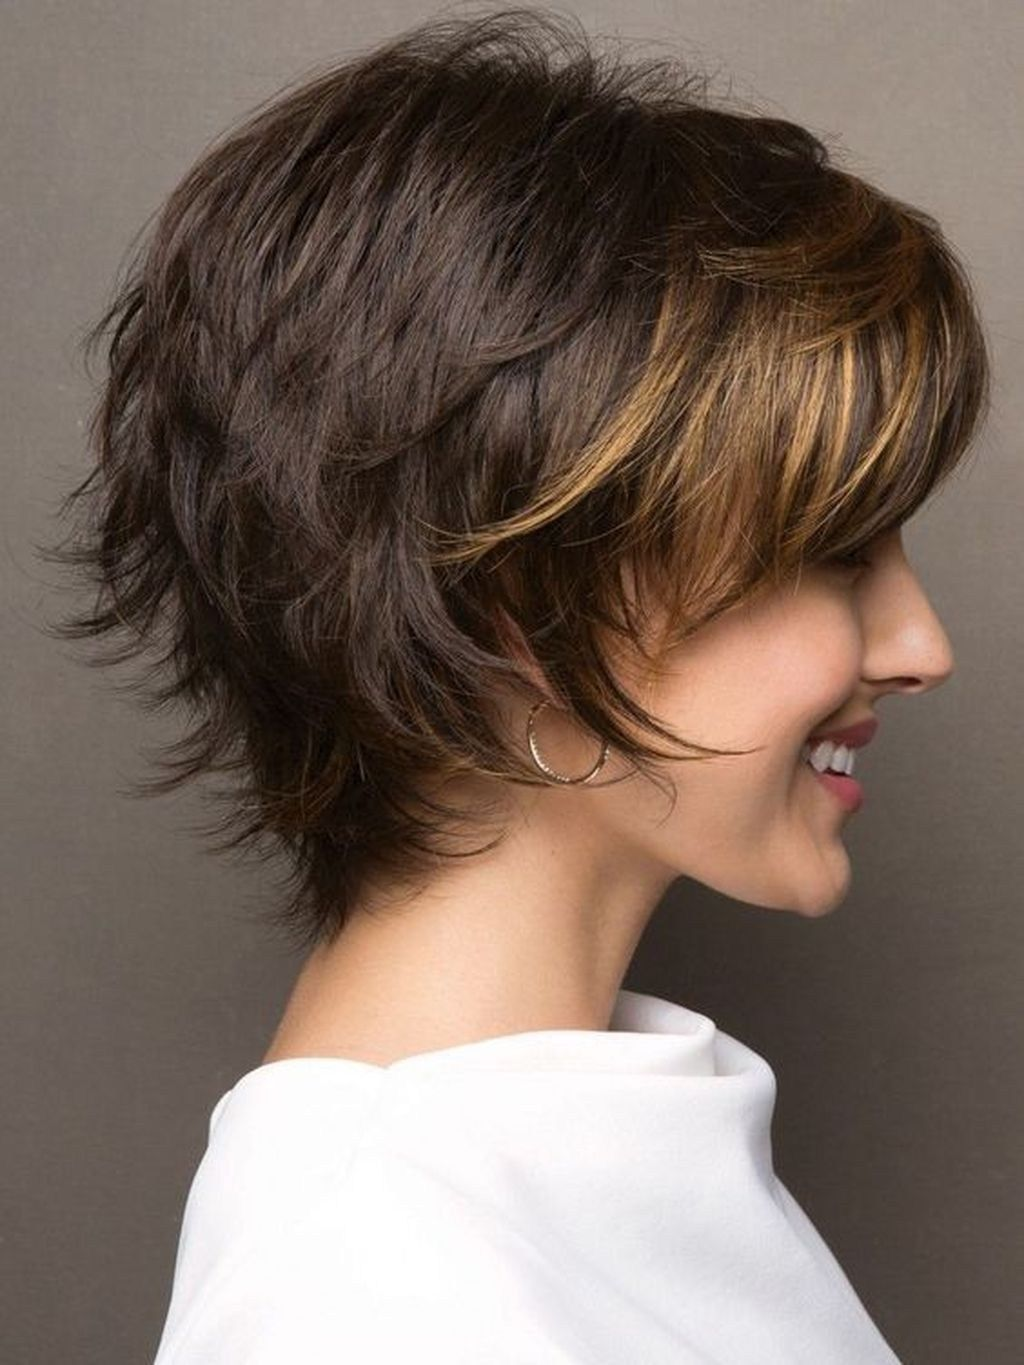 20+ Awesome Short Layered Hairstyles Ideas | Thick hair ...